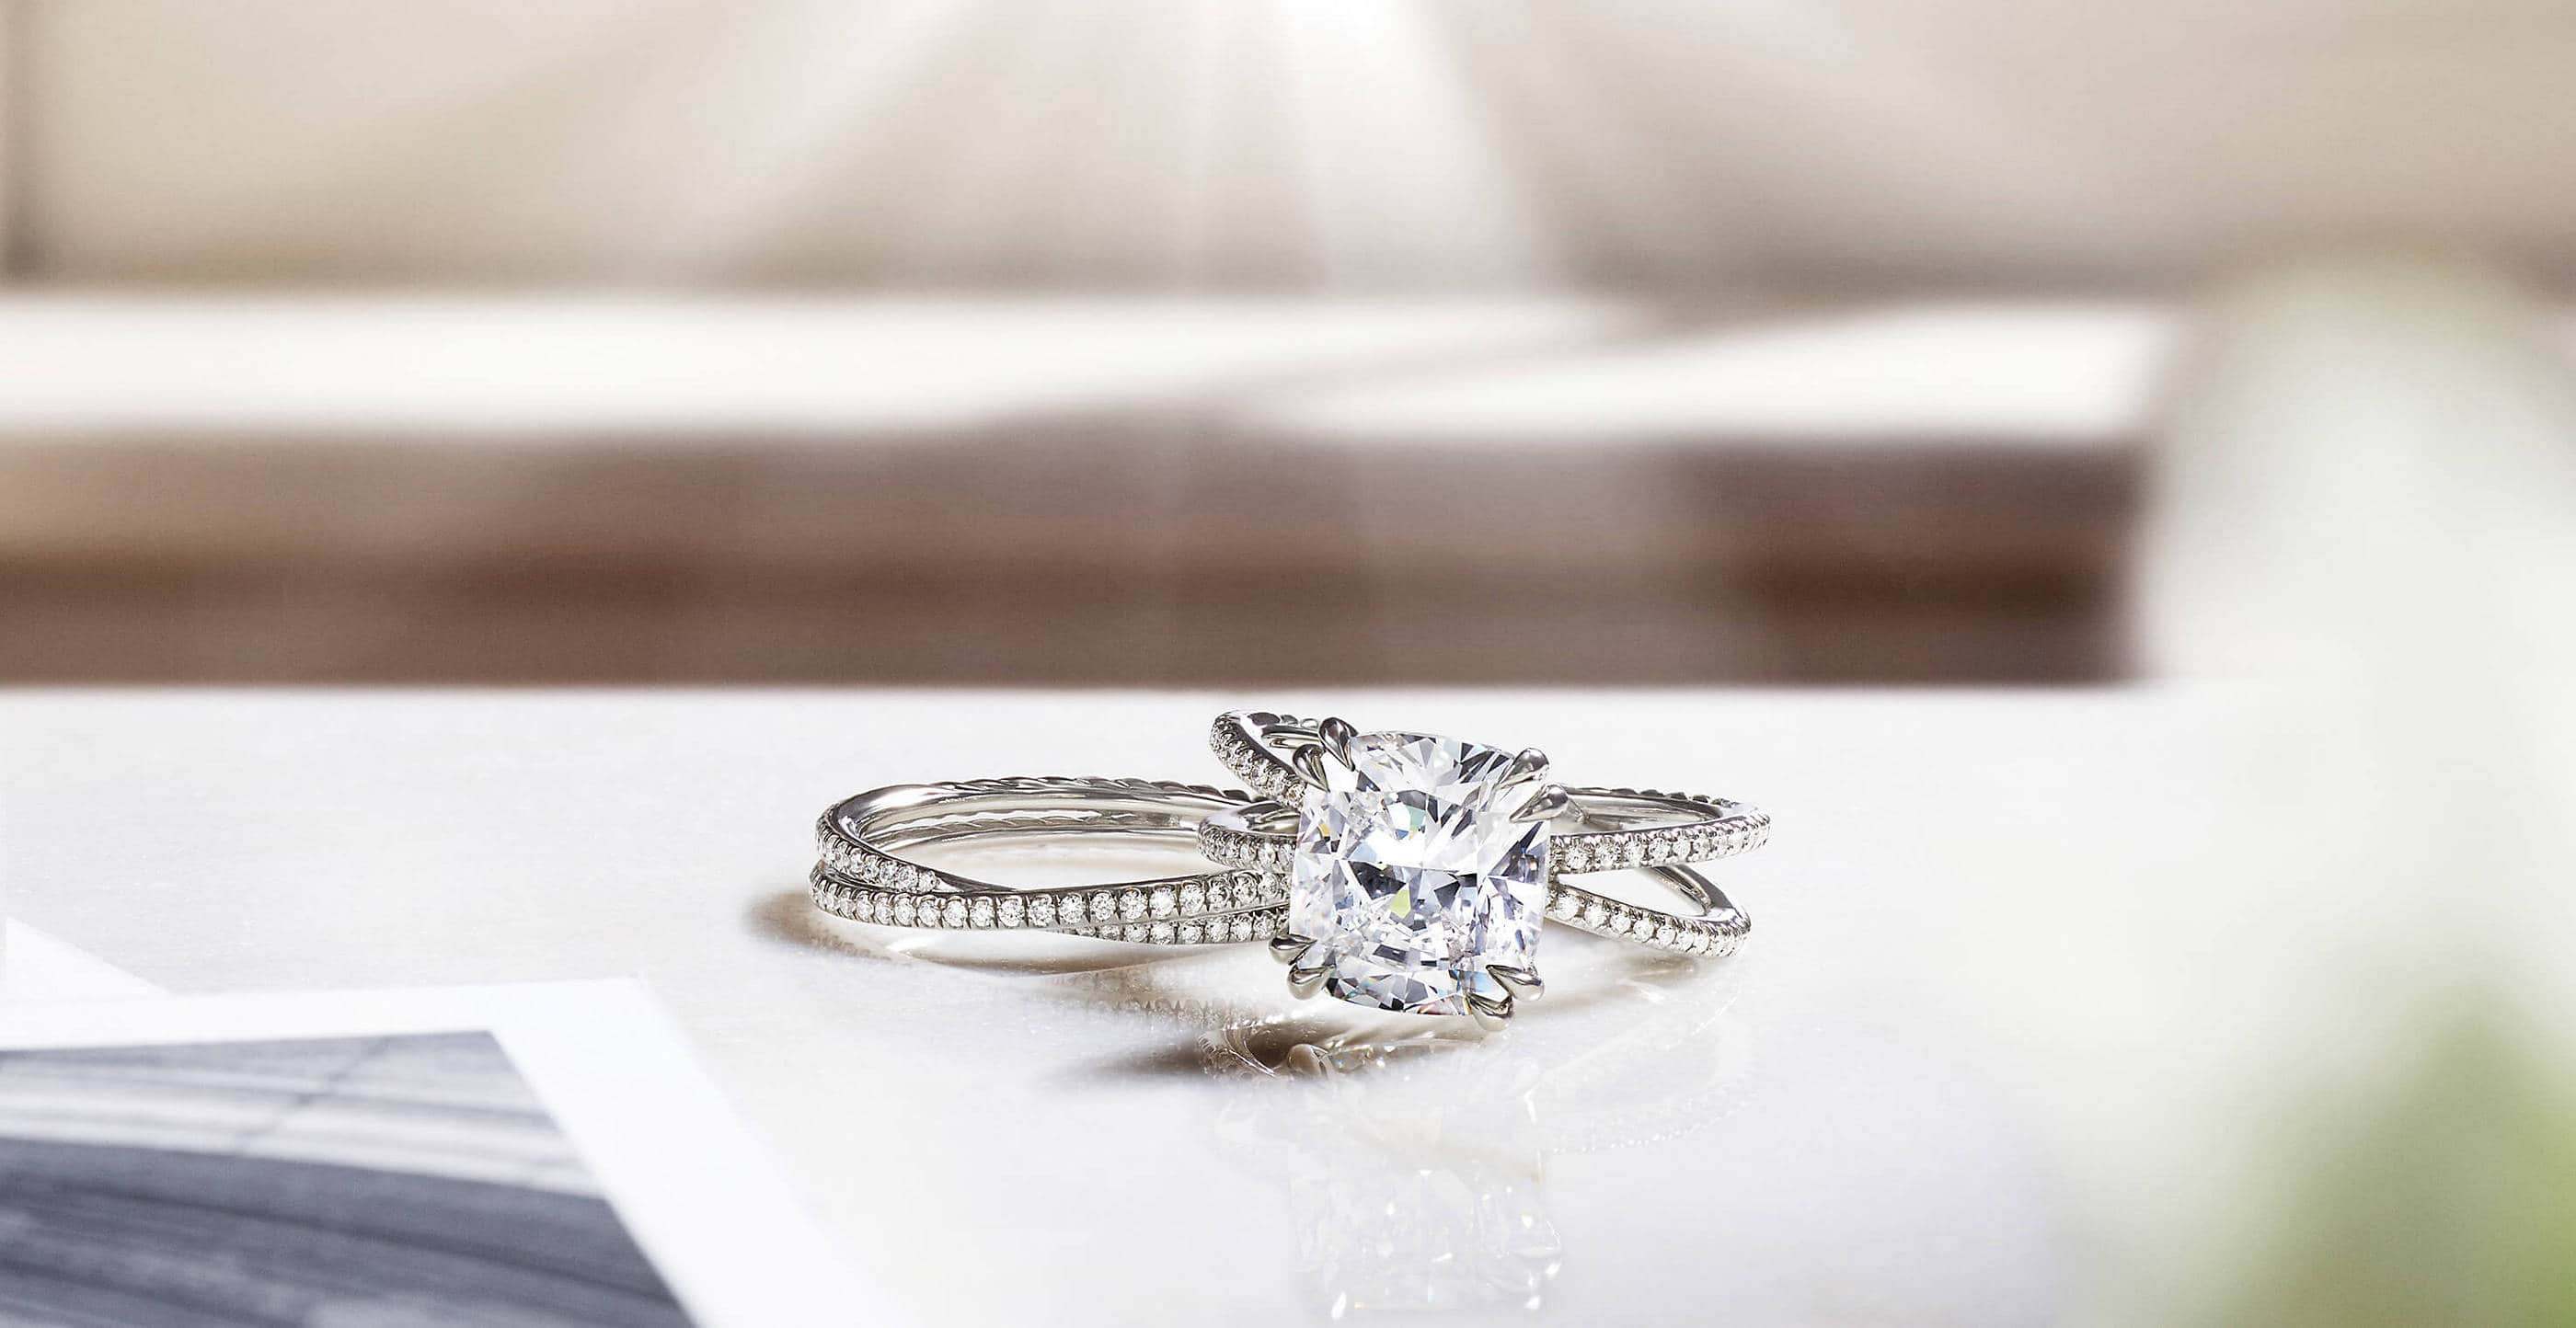 A color photo shows a David Yurman women's Crossover engagement ring atop a matching band ring on a white table near scattered black-and-white photographs. The jewelry is crafted from platinum with diamonds. Behind the rings is a white windowsill with hard shadows.